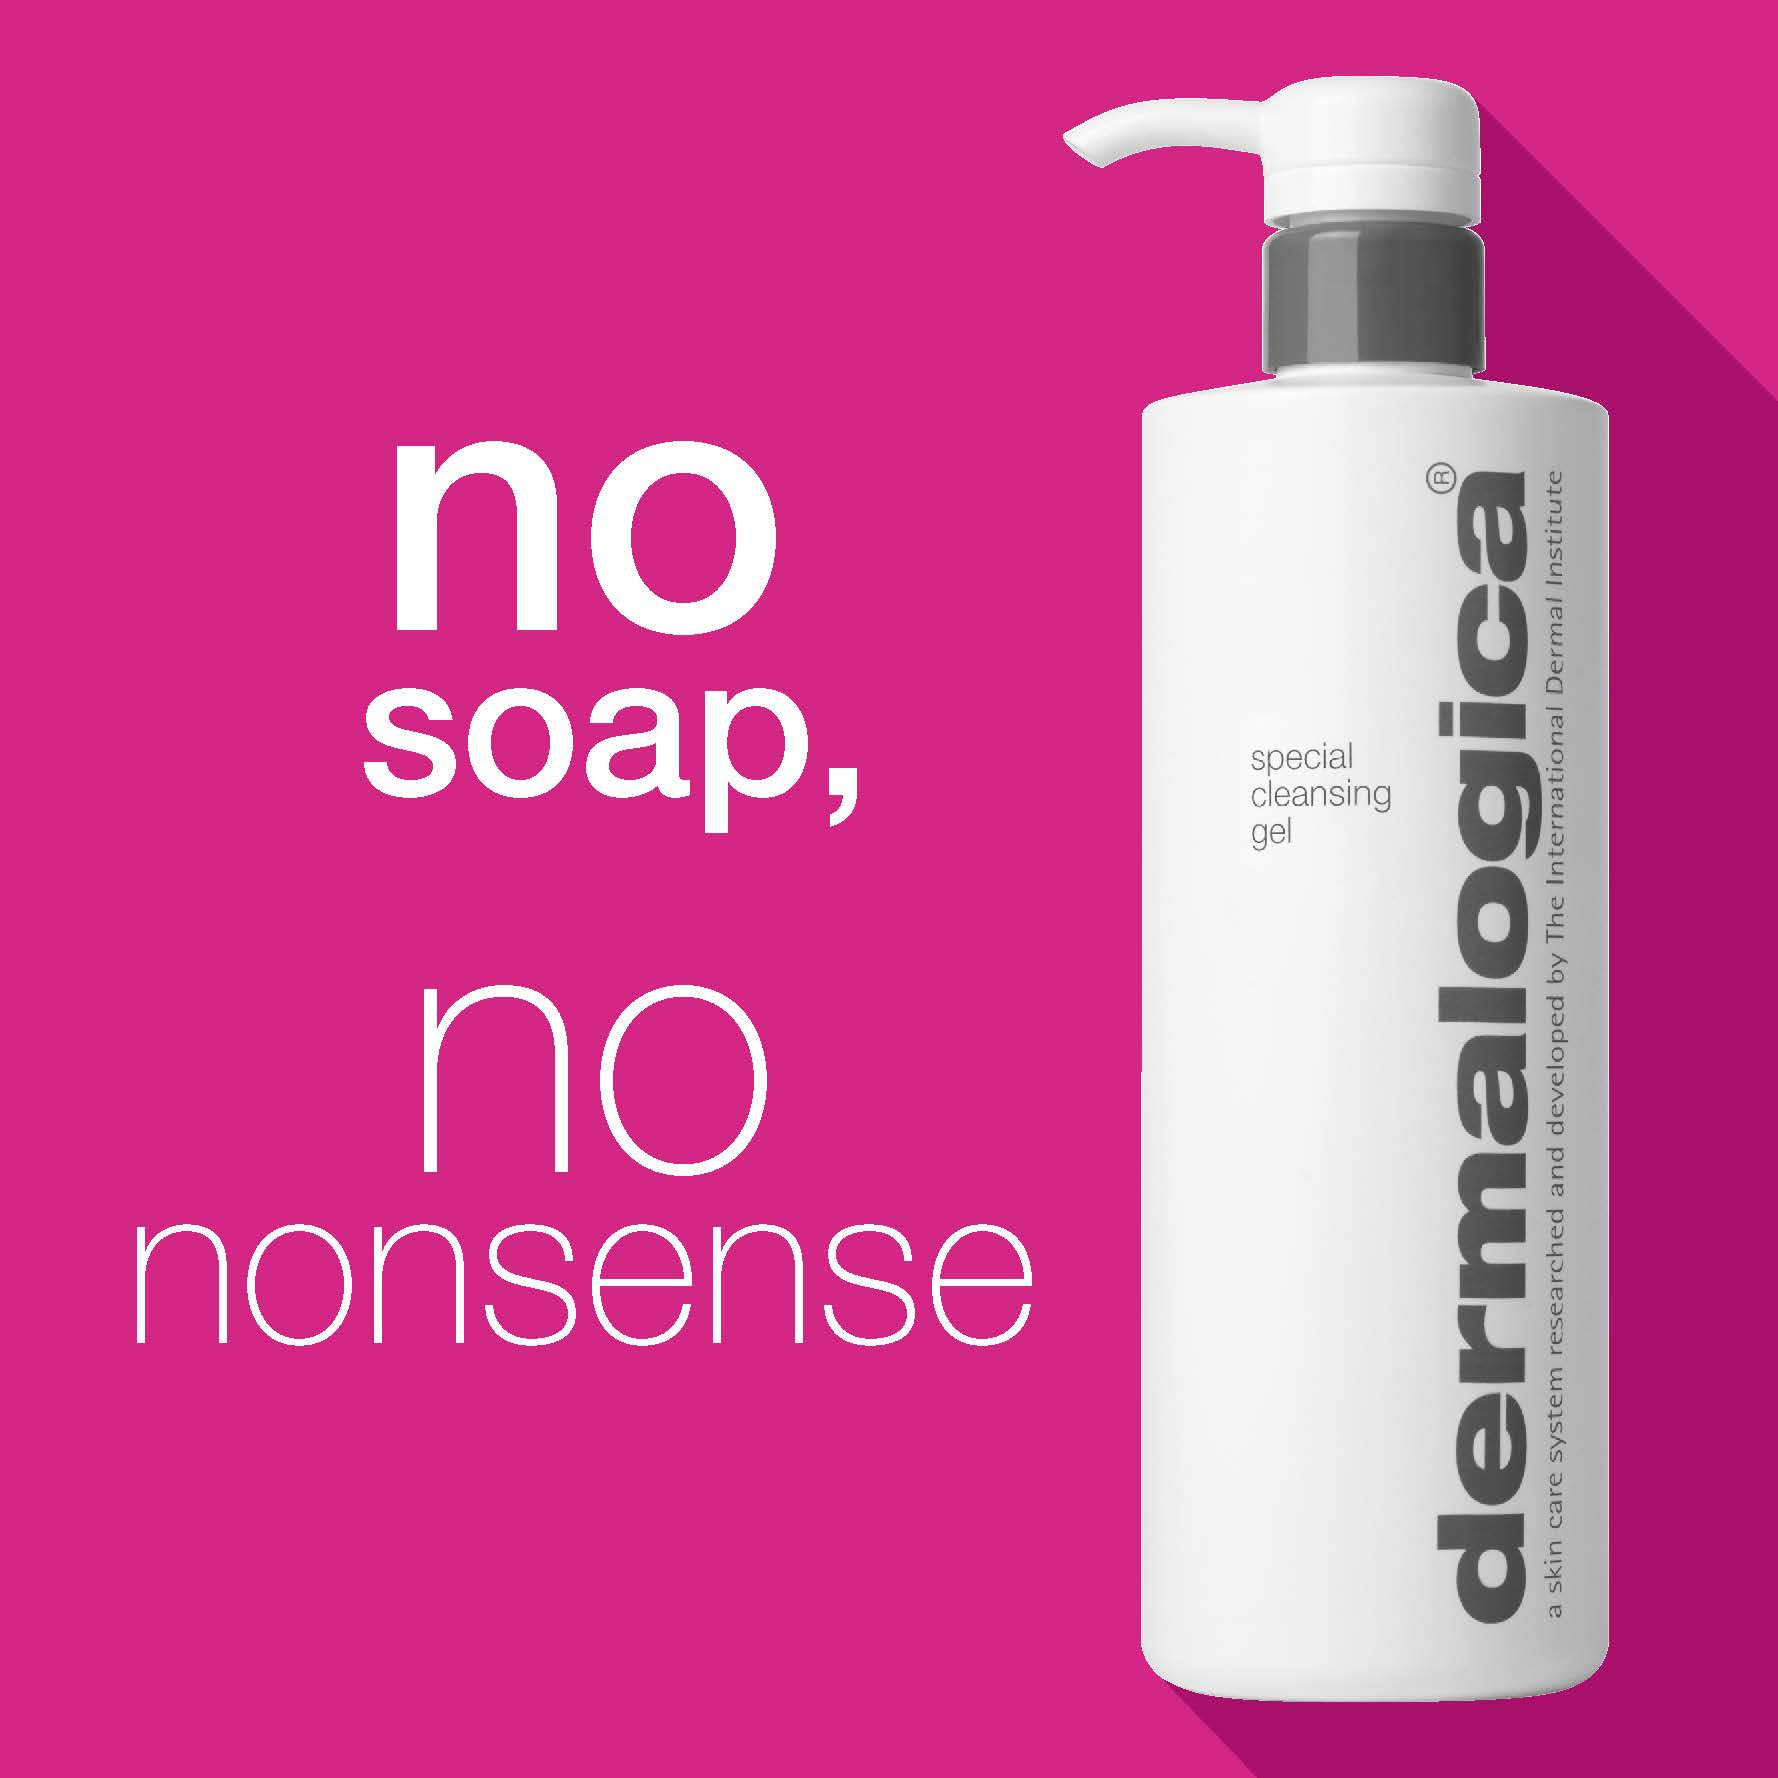 Special Cleansing Gel.jpg